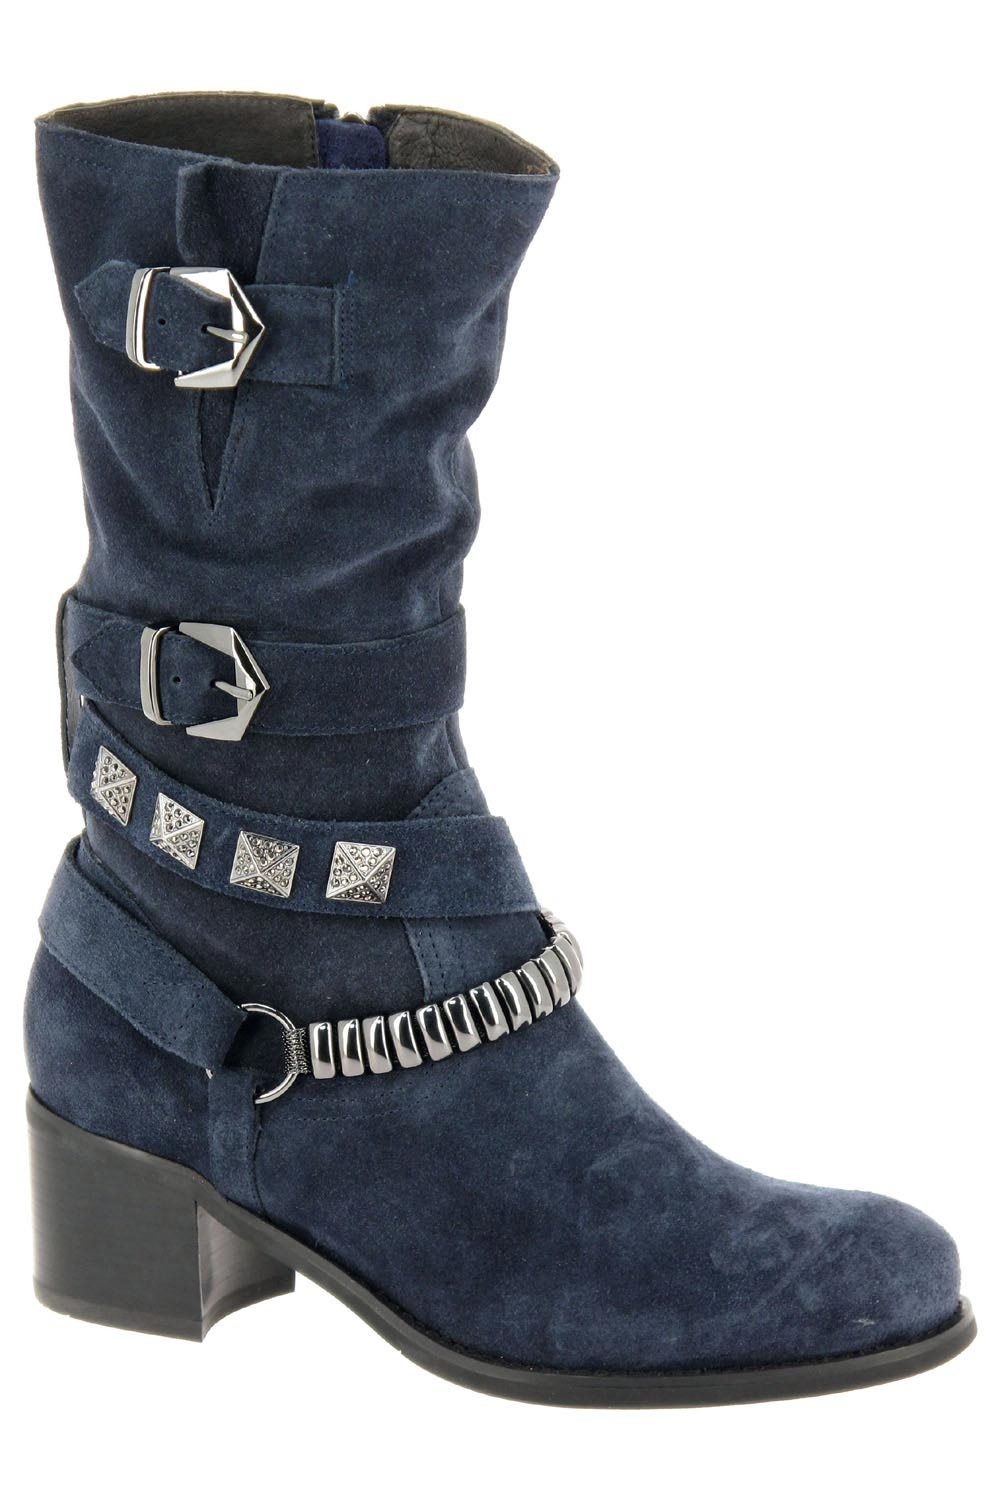 mamzelle mamzelle 2014 chaussure 2014 chaussure mamzelle hiver chaussure hiver A34R5jL